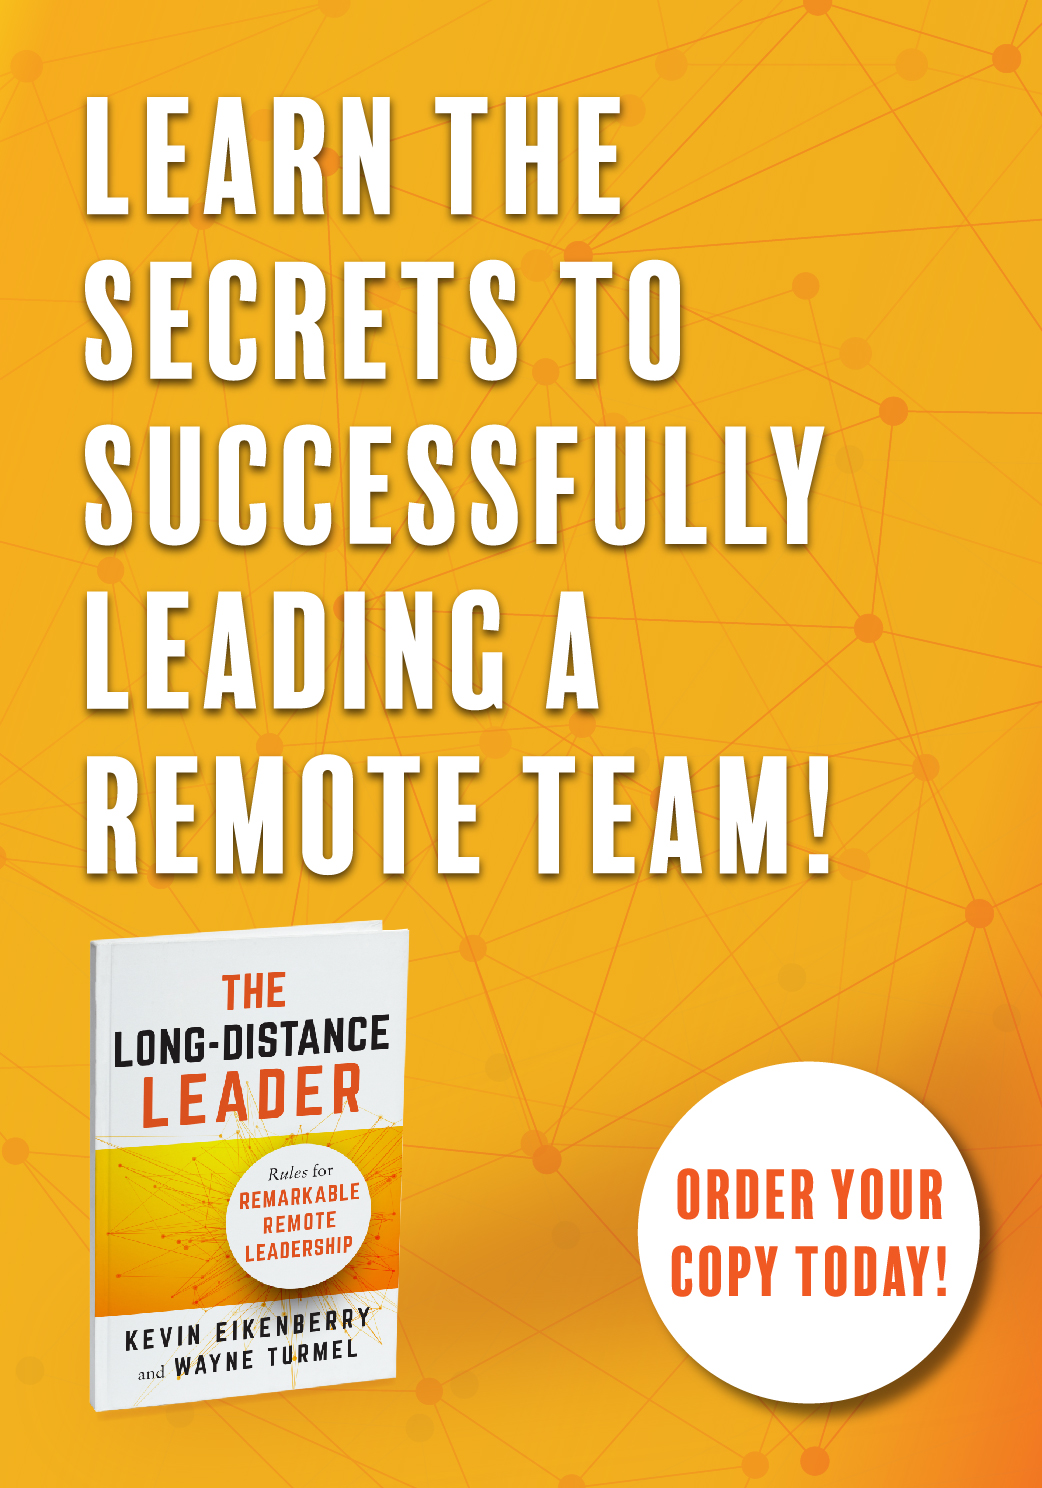 Order your copy of The Long-Distance Leader